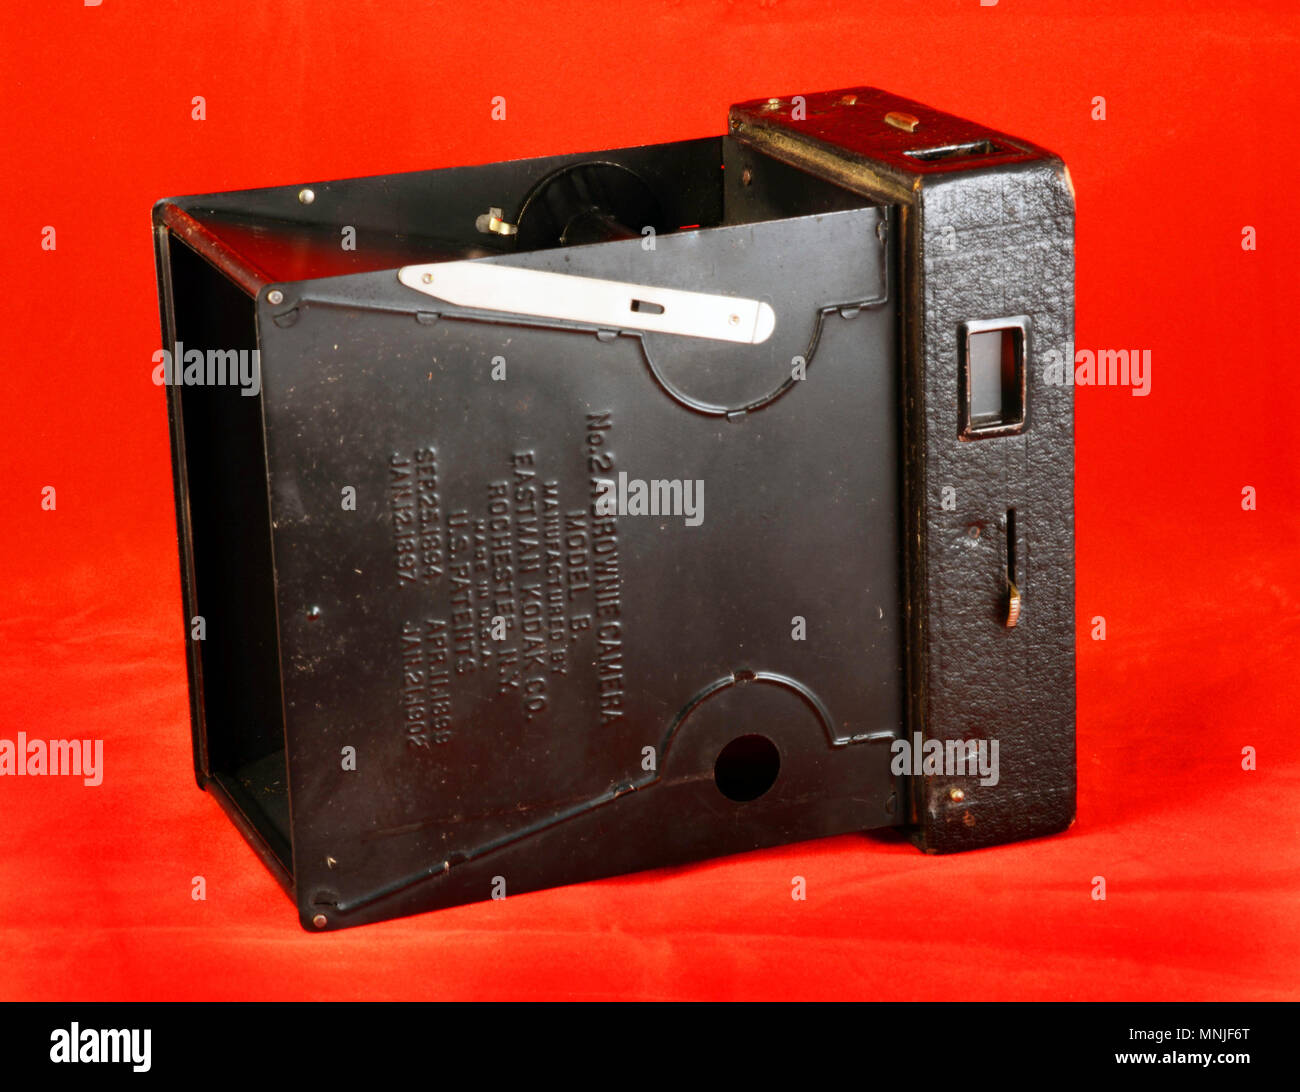 The Kodak No 2a Brownie Model B Is A Box Camera That Uses 116 Film It Was Introduced In 1907 And Manufactured Until 1933 By The Eastman Kodak Co Ny Stock Photo Alamy